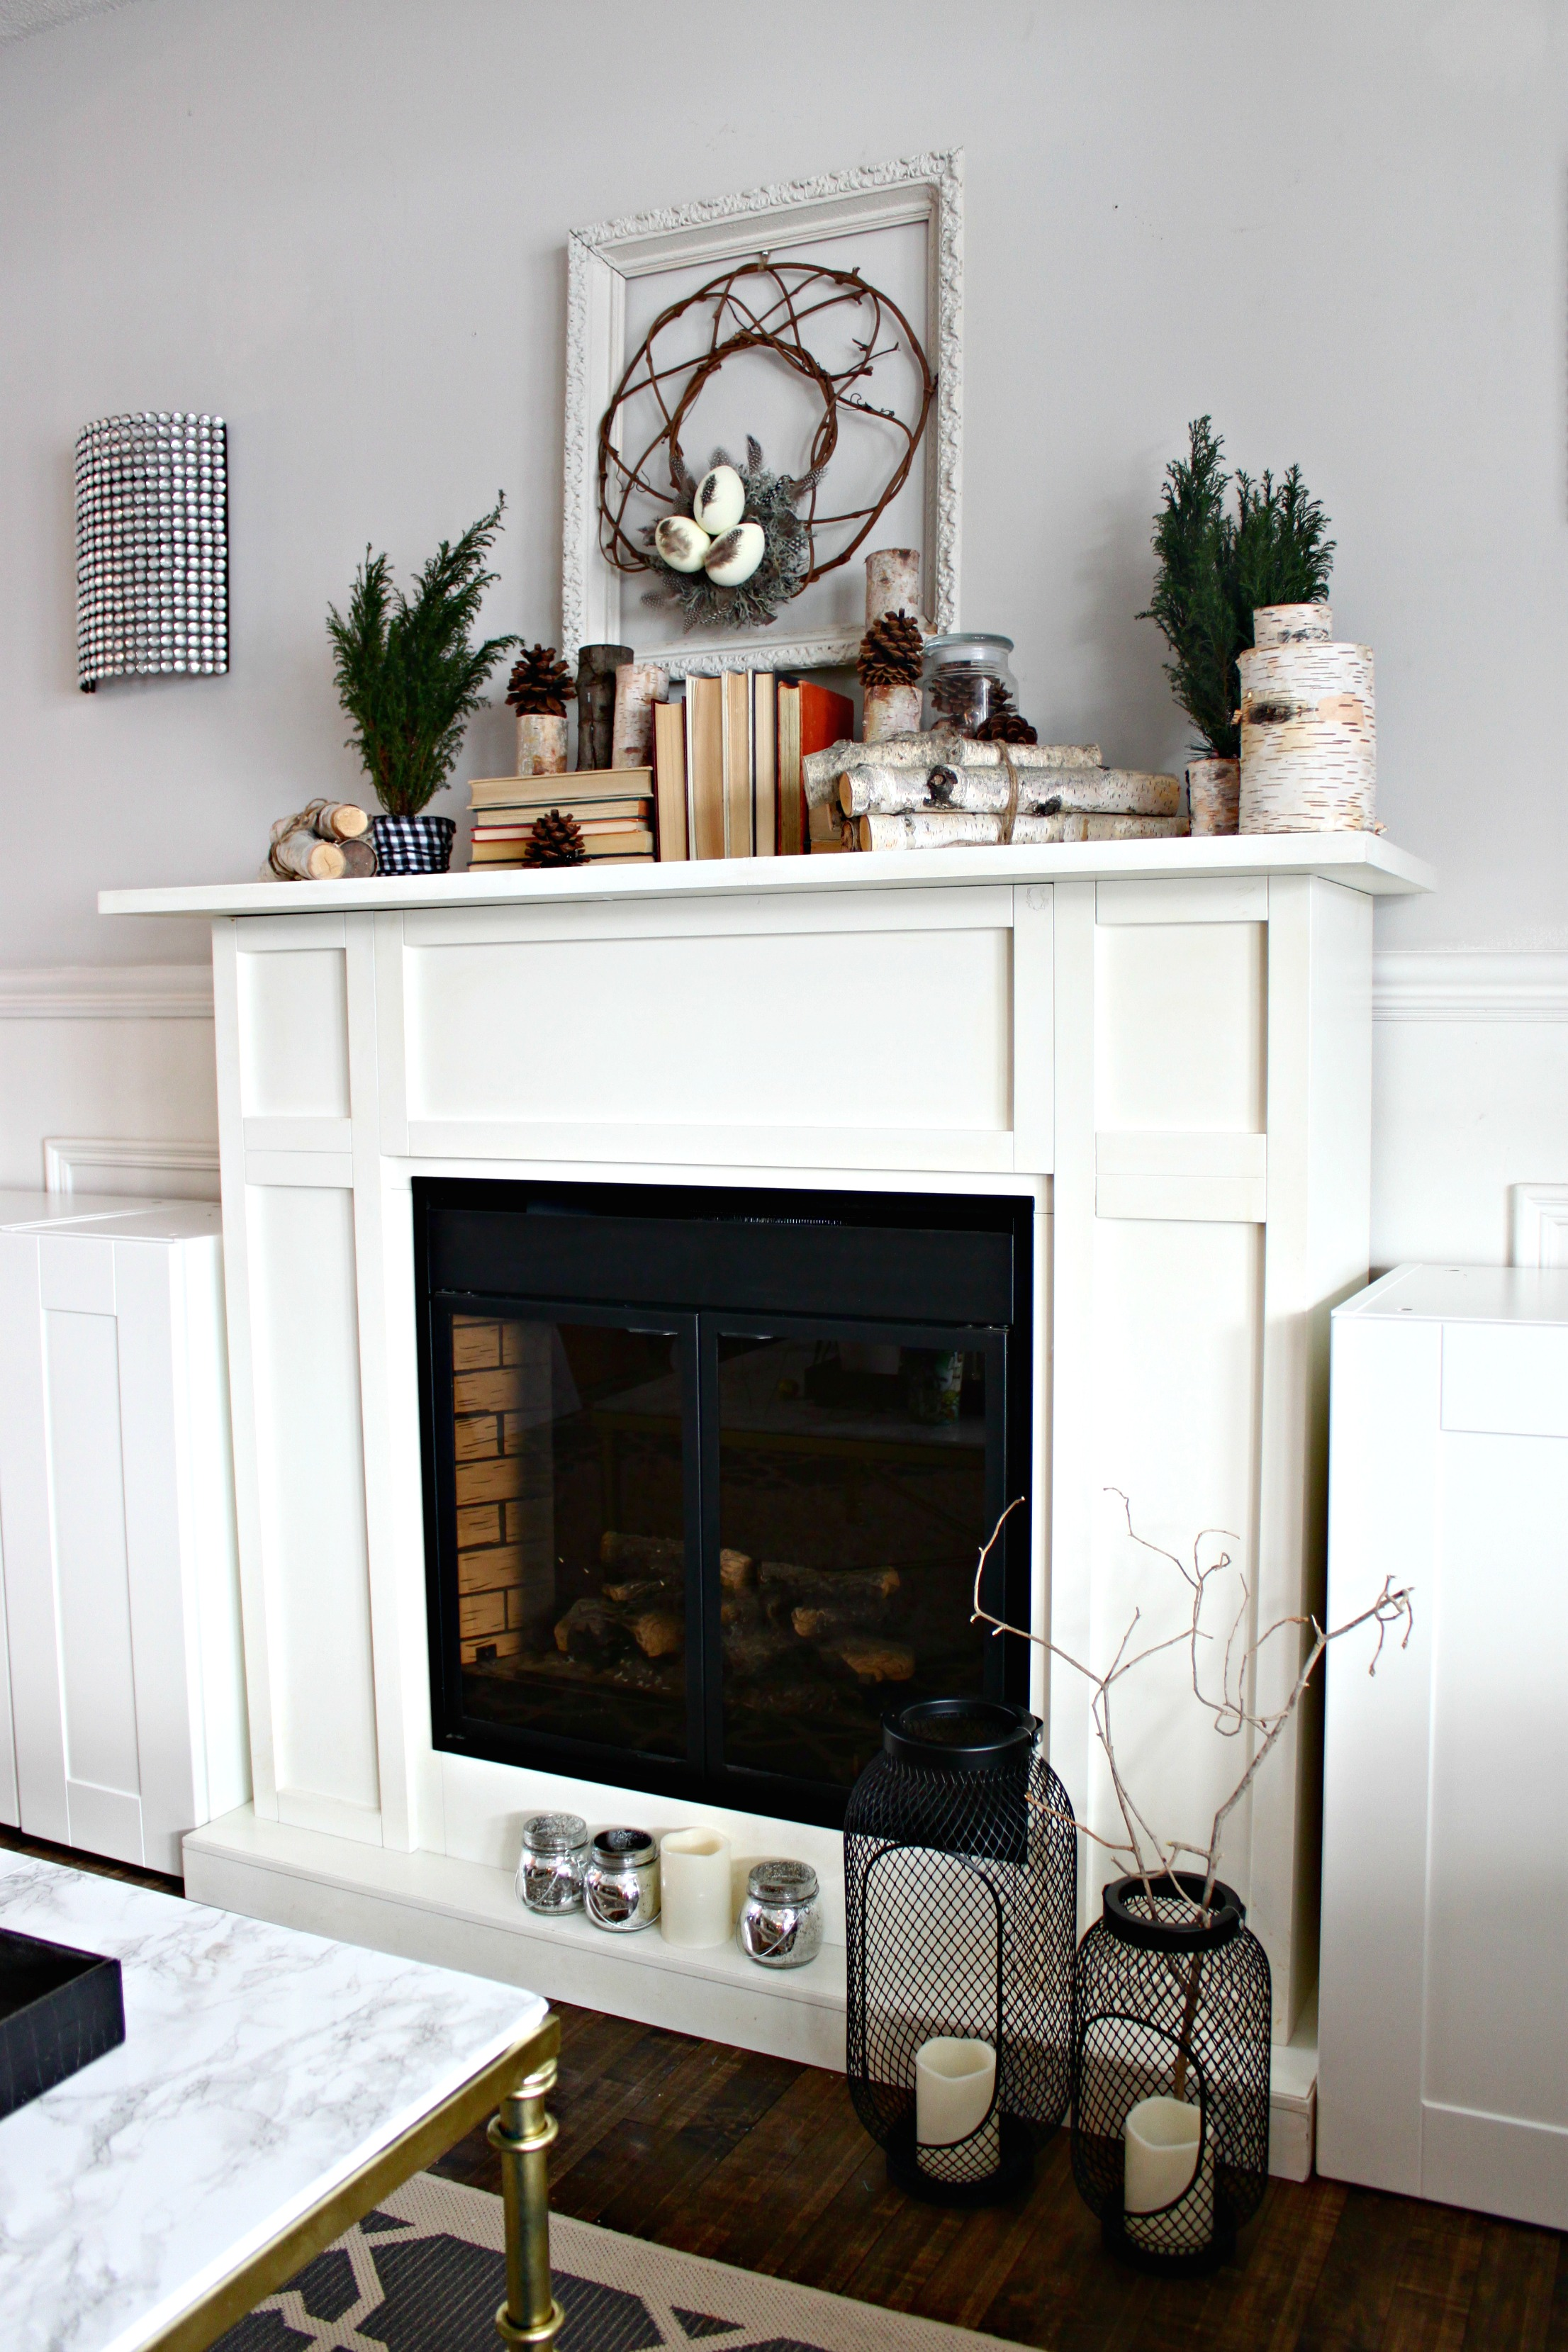 Easy DIY Winter Wreath and how I decorated my mantel for the winter months. A white electric fireplace can work well for a winter theme.